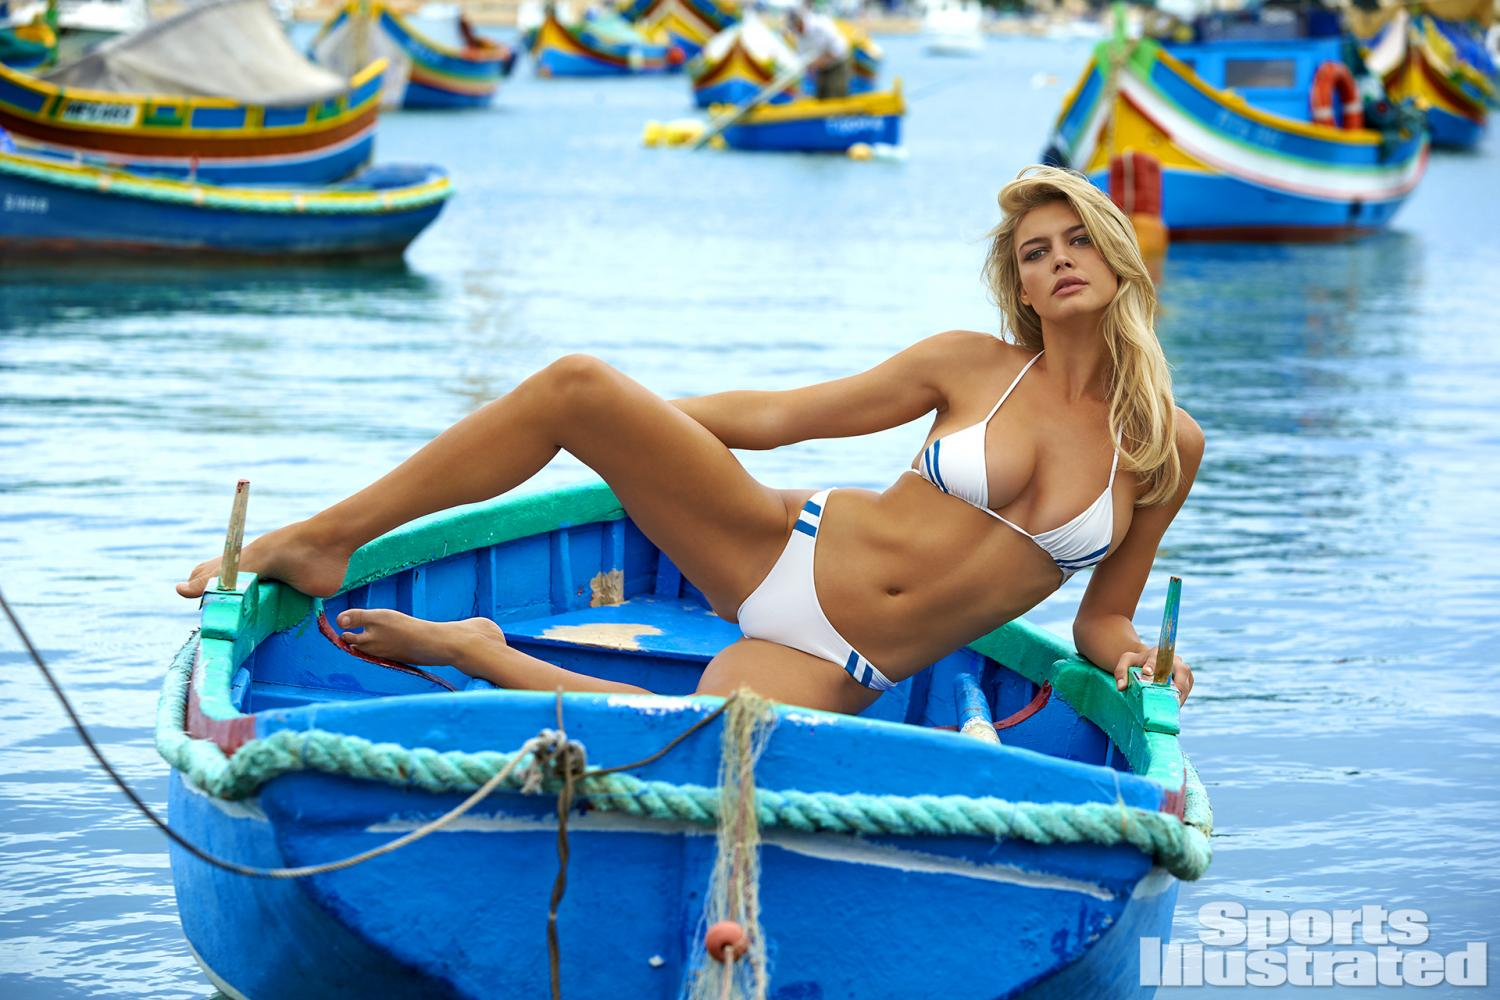 Kelly Rohrbach was photographed by Ben Watts in Malta. Swimsuit by MIKOH.